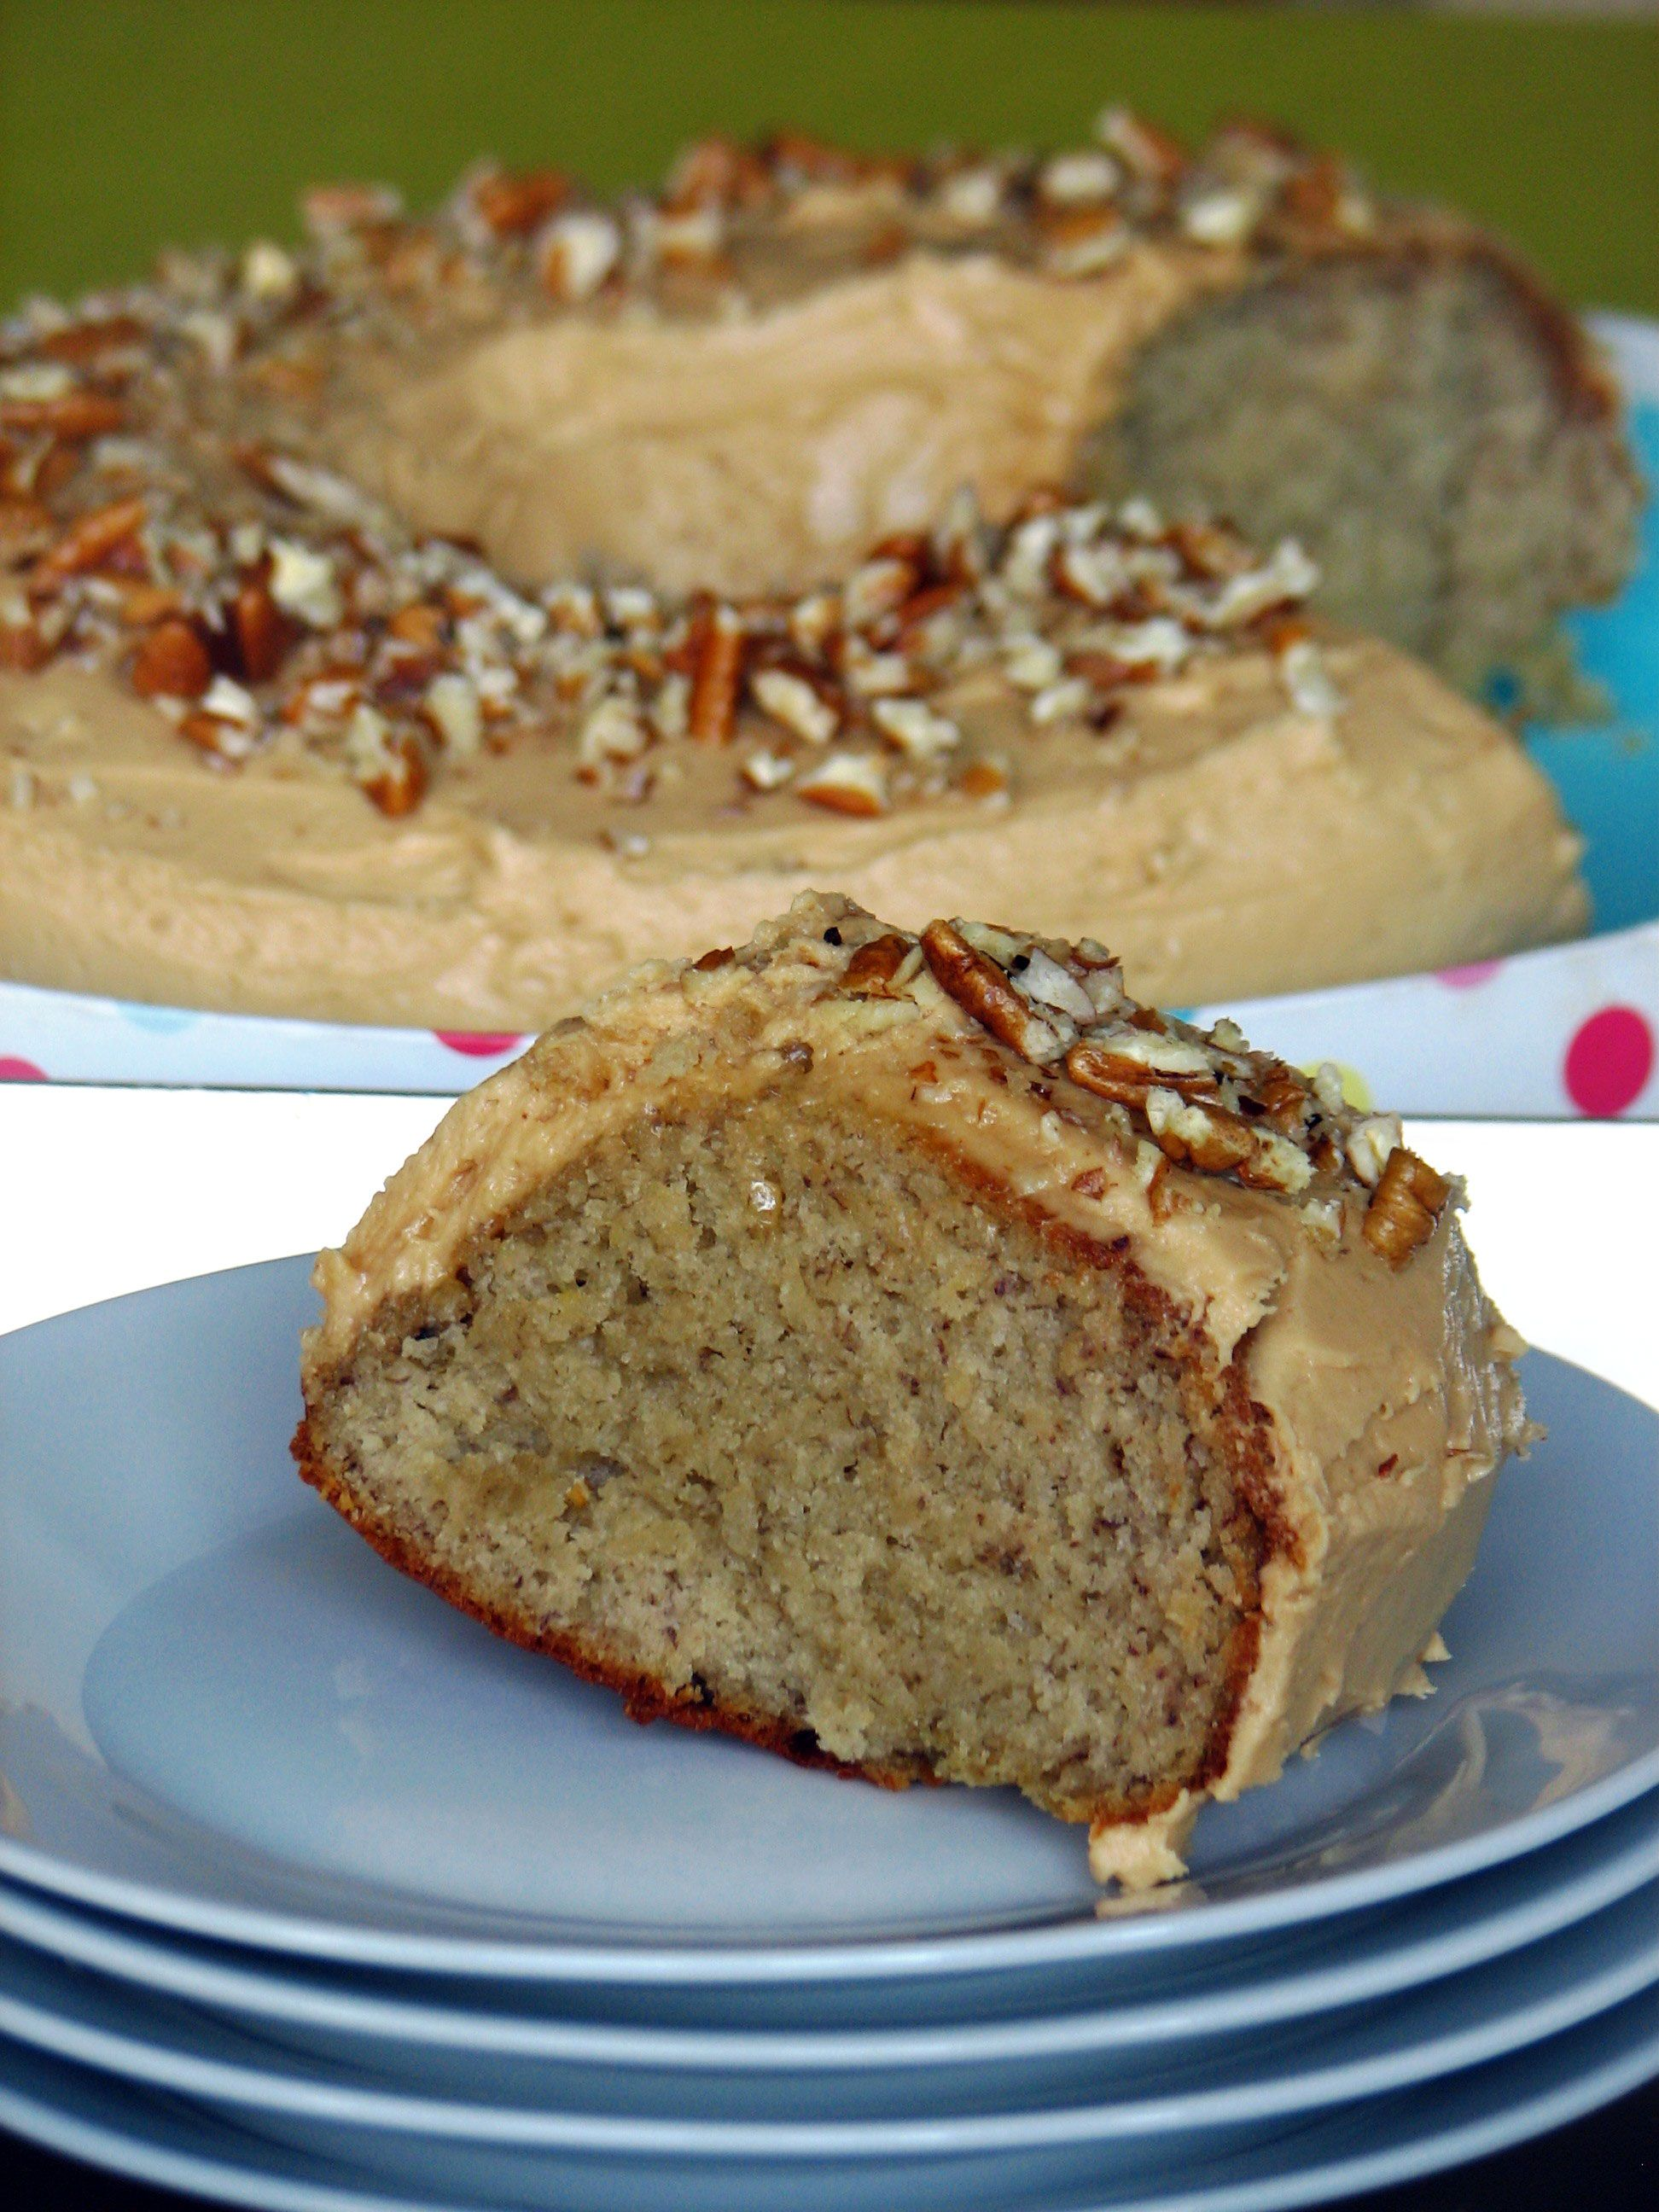 Banana Cake with Peanut Butter Icing #dessert #recipe